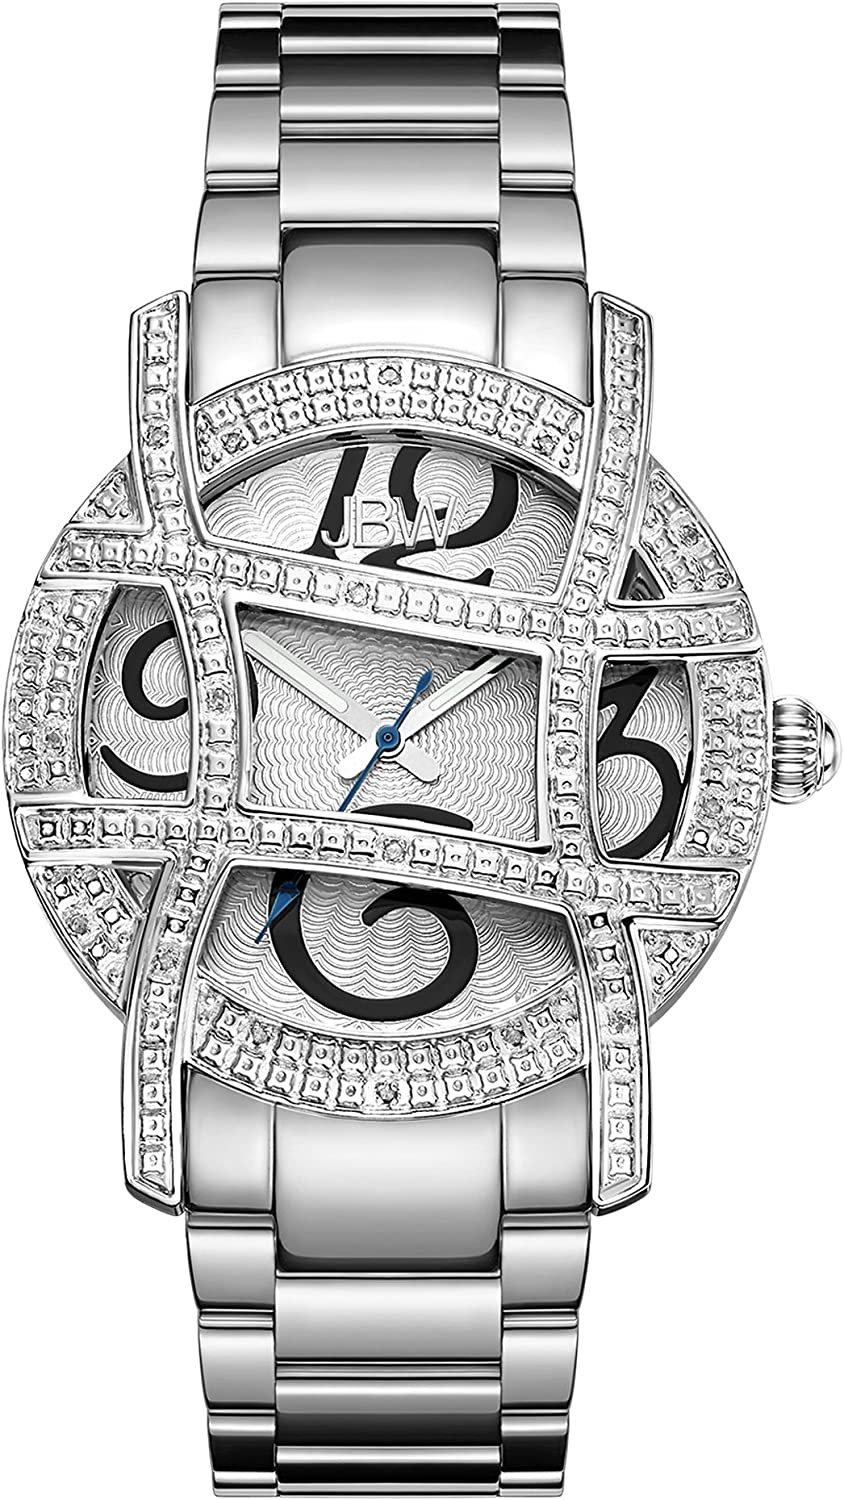 JBW Women's Olympia 0.20 ctw Diamond 18k Gold-Plated Stainless-Steel Watch JB-6214-A